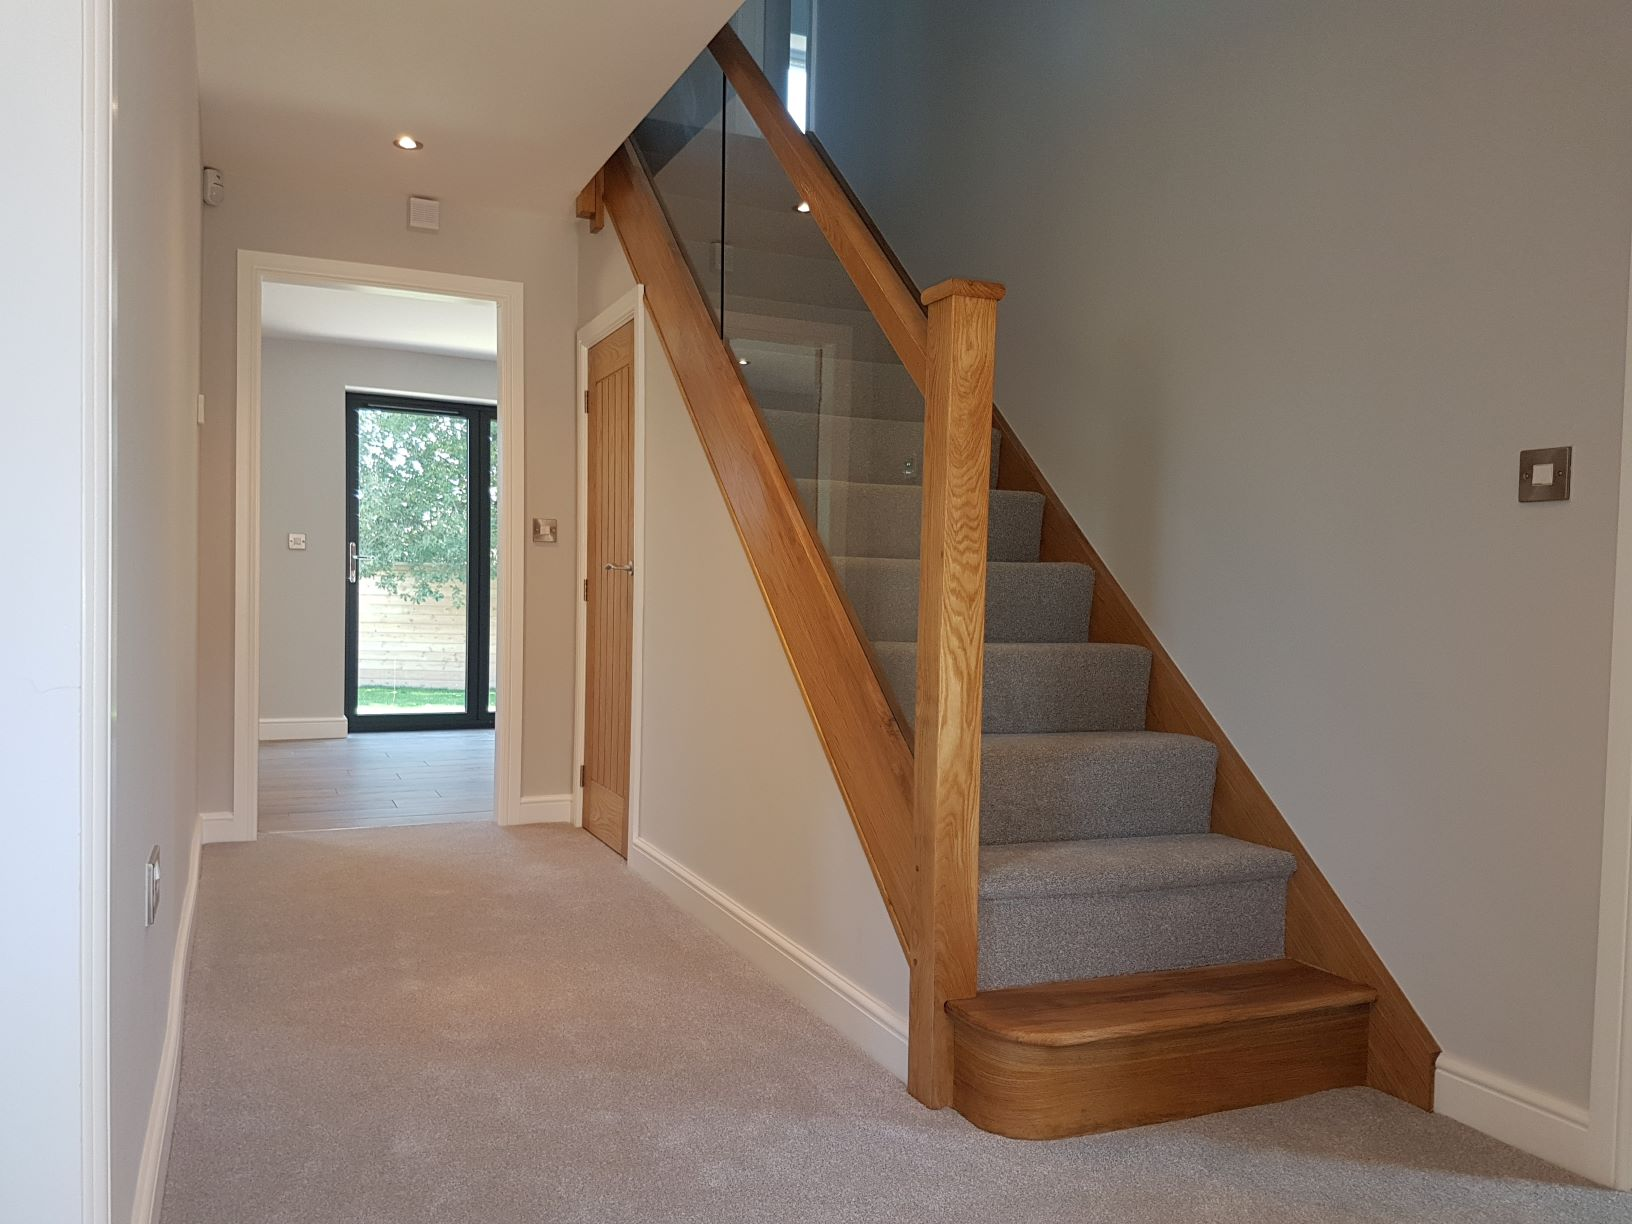 7-St-Johns-Croft-staircase-1